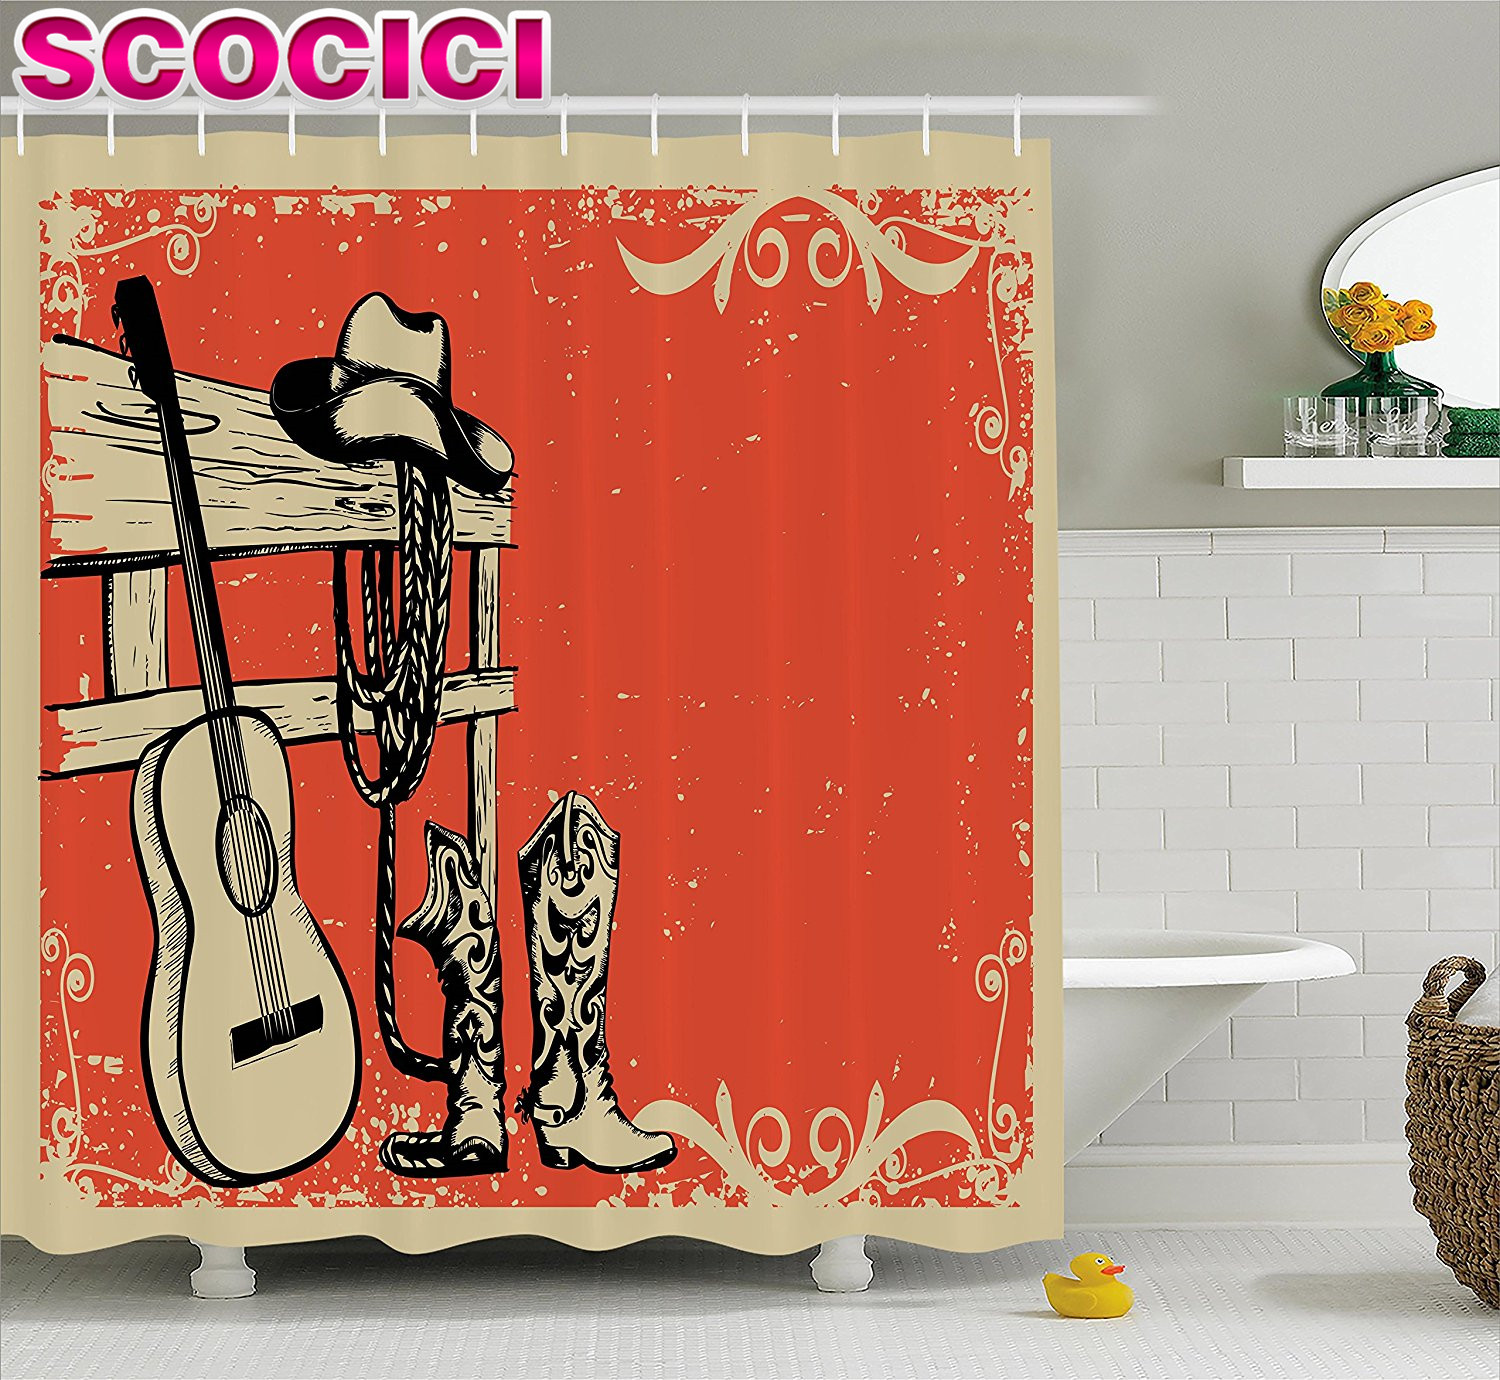 Discount Western Home Decor: Online Buy Wholesale Boot Illustrations From China Boot